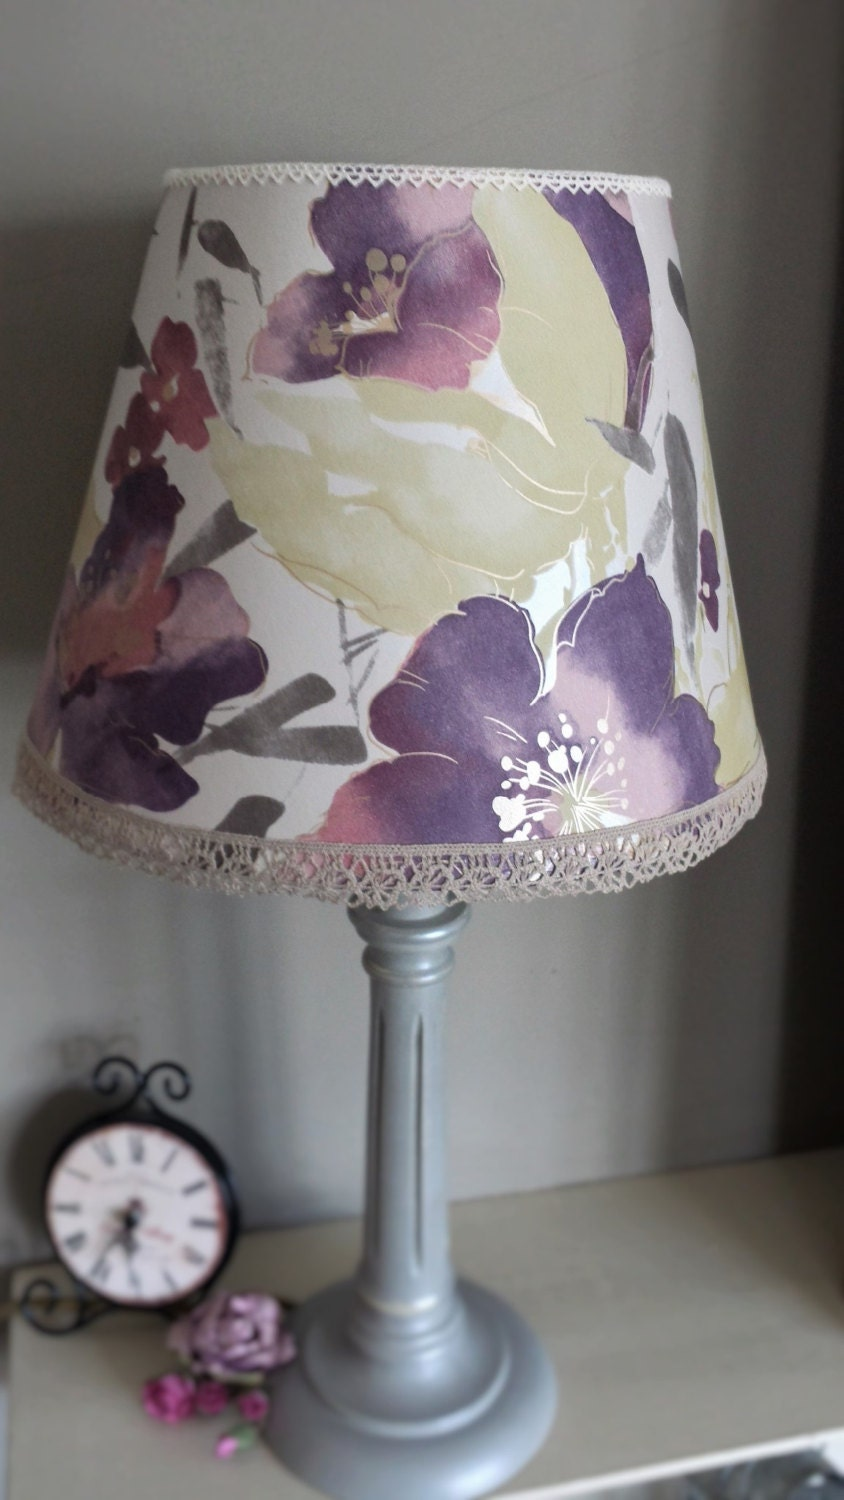 Flower Lamp Shade : Lamp shadepurple floral shadewatercolour style flowers with